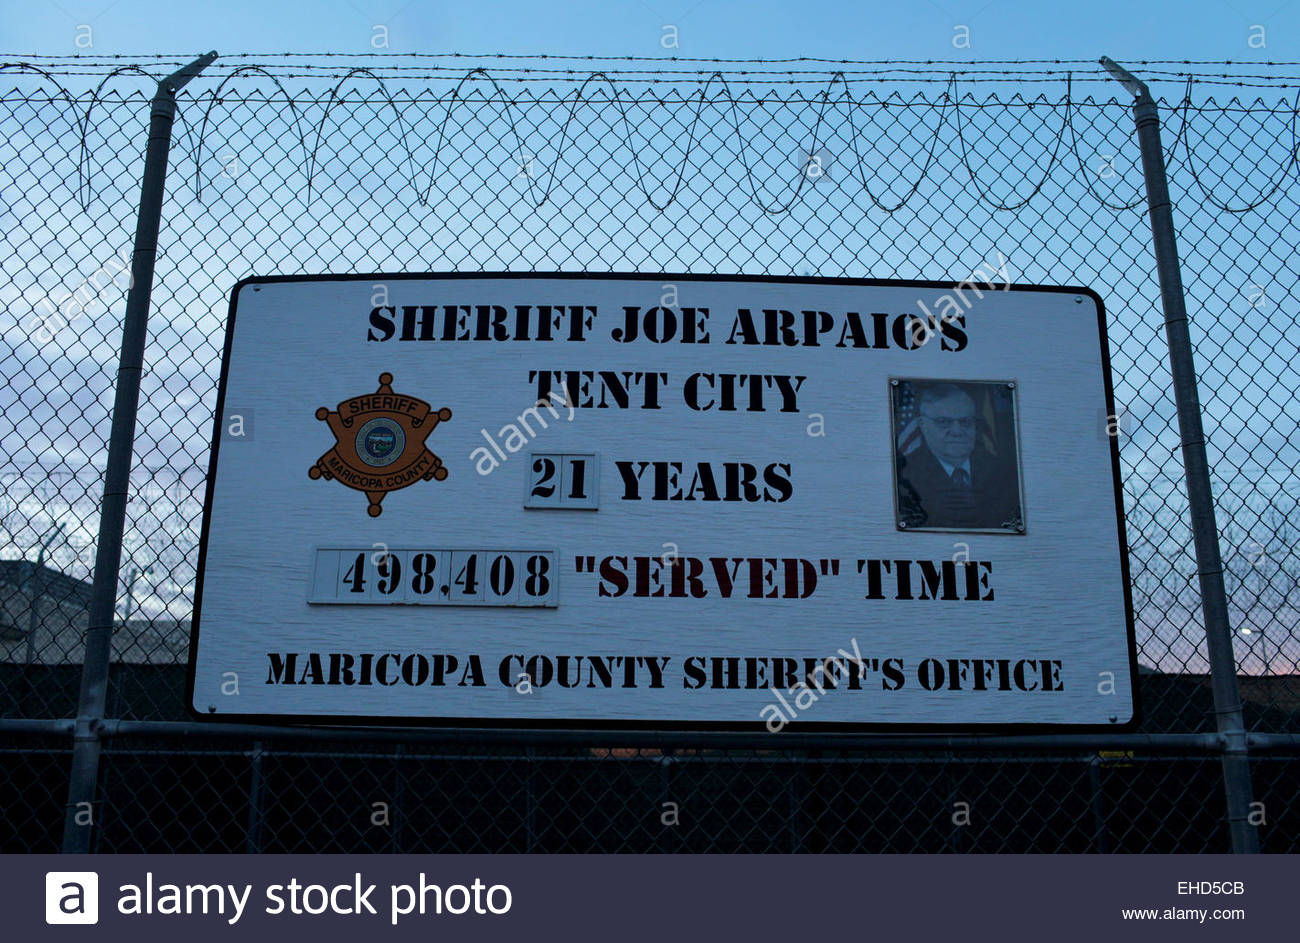 Tent city jail americas toughest jail run by sheriff joe arpaio tent city jail americas toughest jail run by sheriff joe arpaio in phoenix arizona aiddatafo Image collections